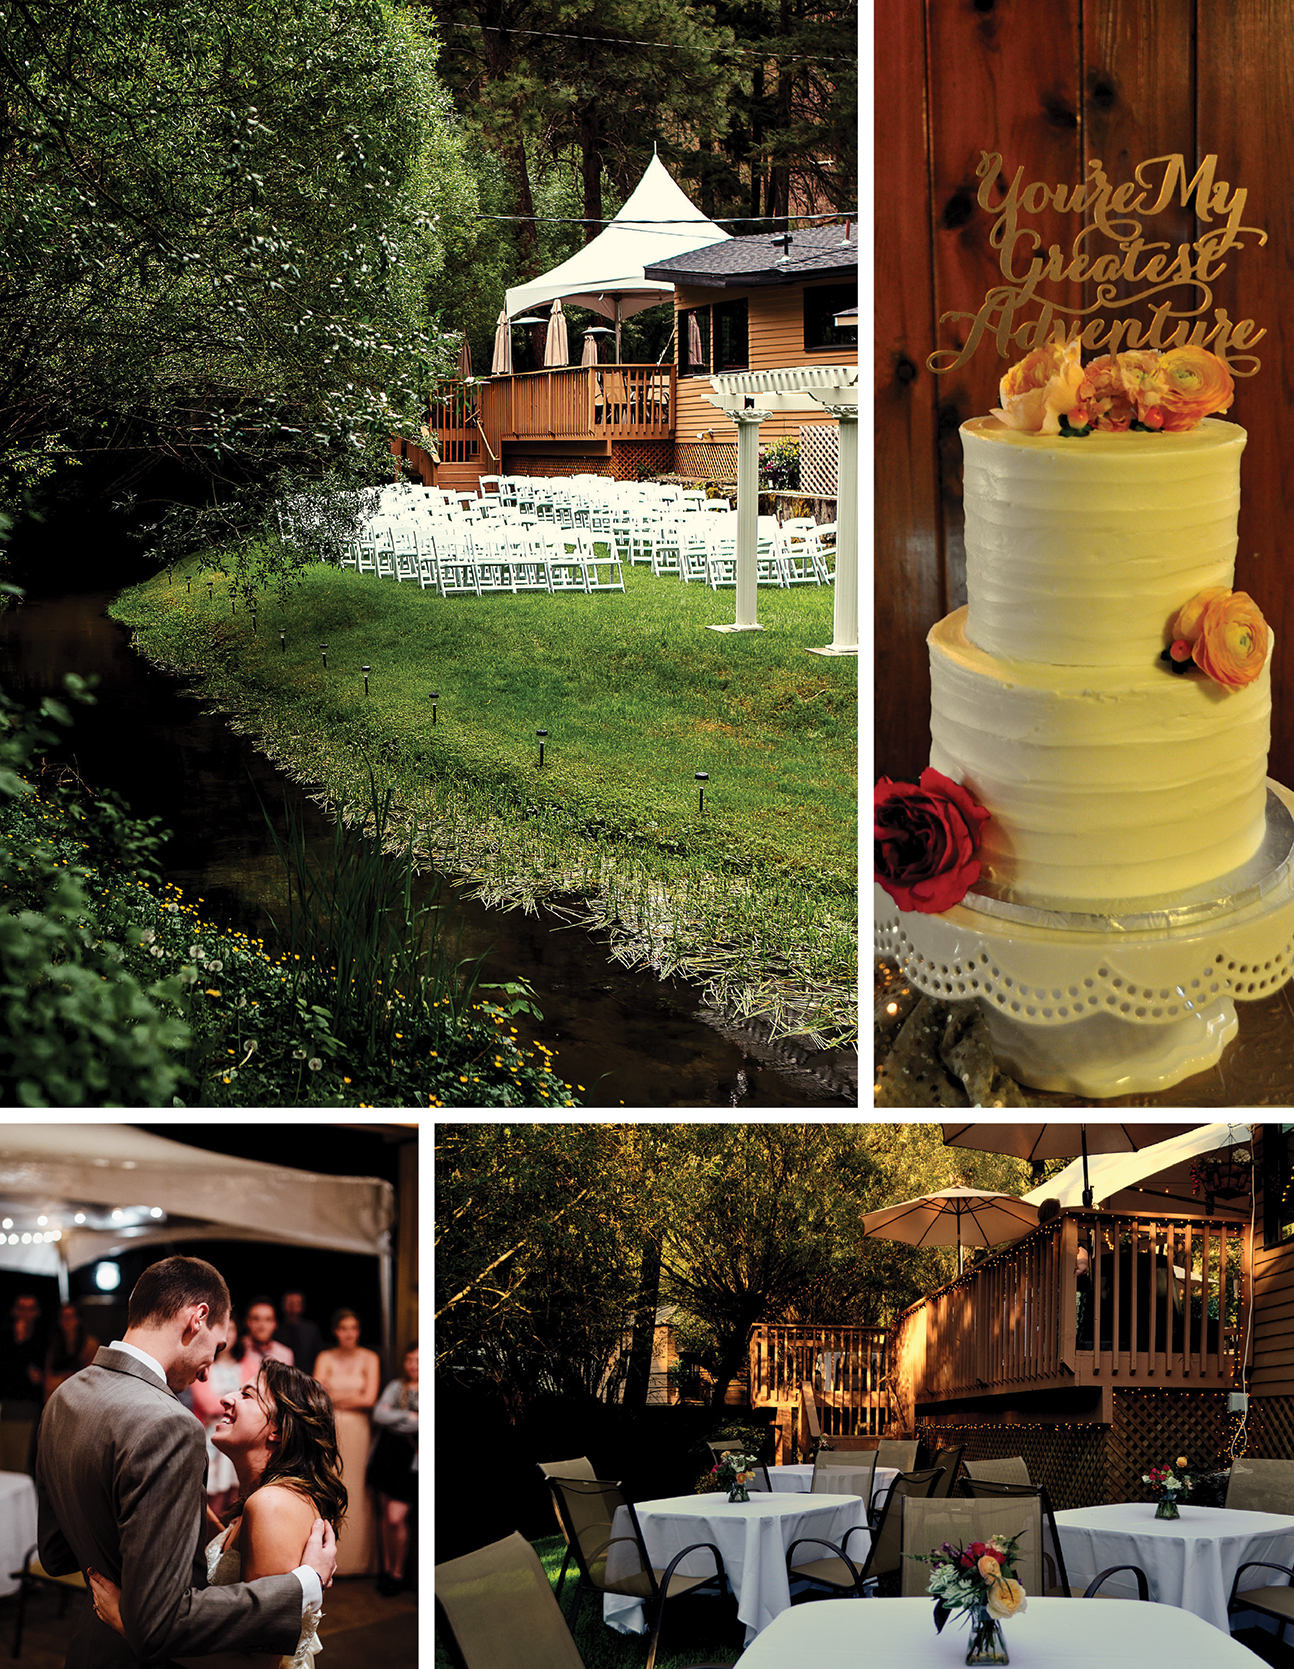 "<a href=""/vendors/wedding-lodging-facilities?id=""/>http://theweddingresourceguide.net/index.php?option=com_content&amp;view=article&amp;id=285"